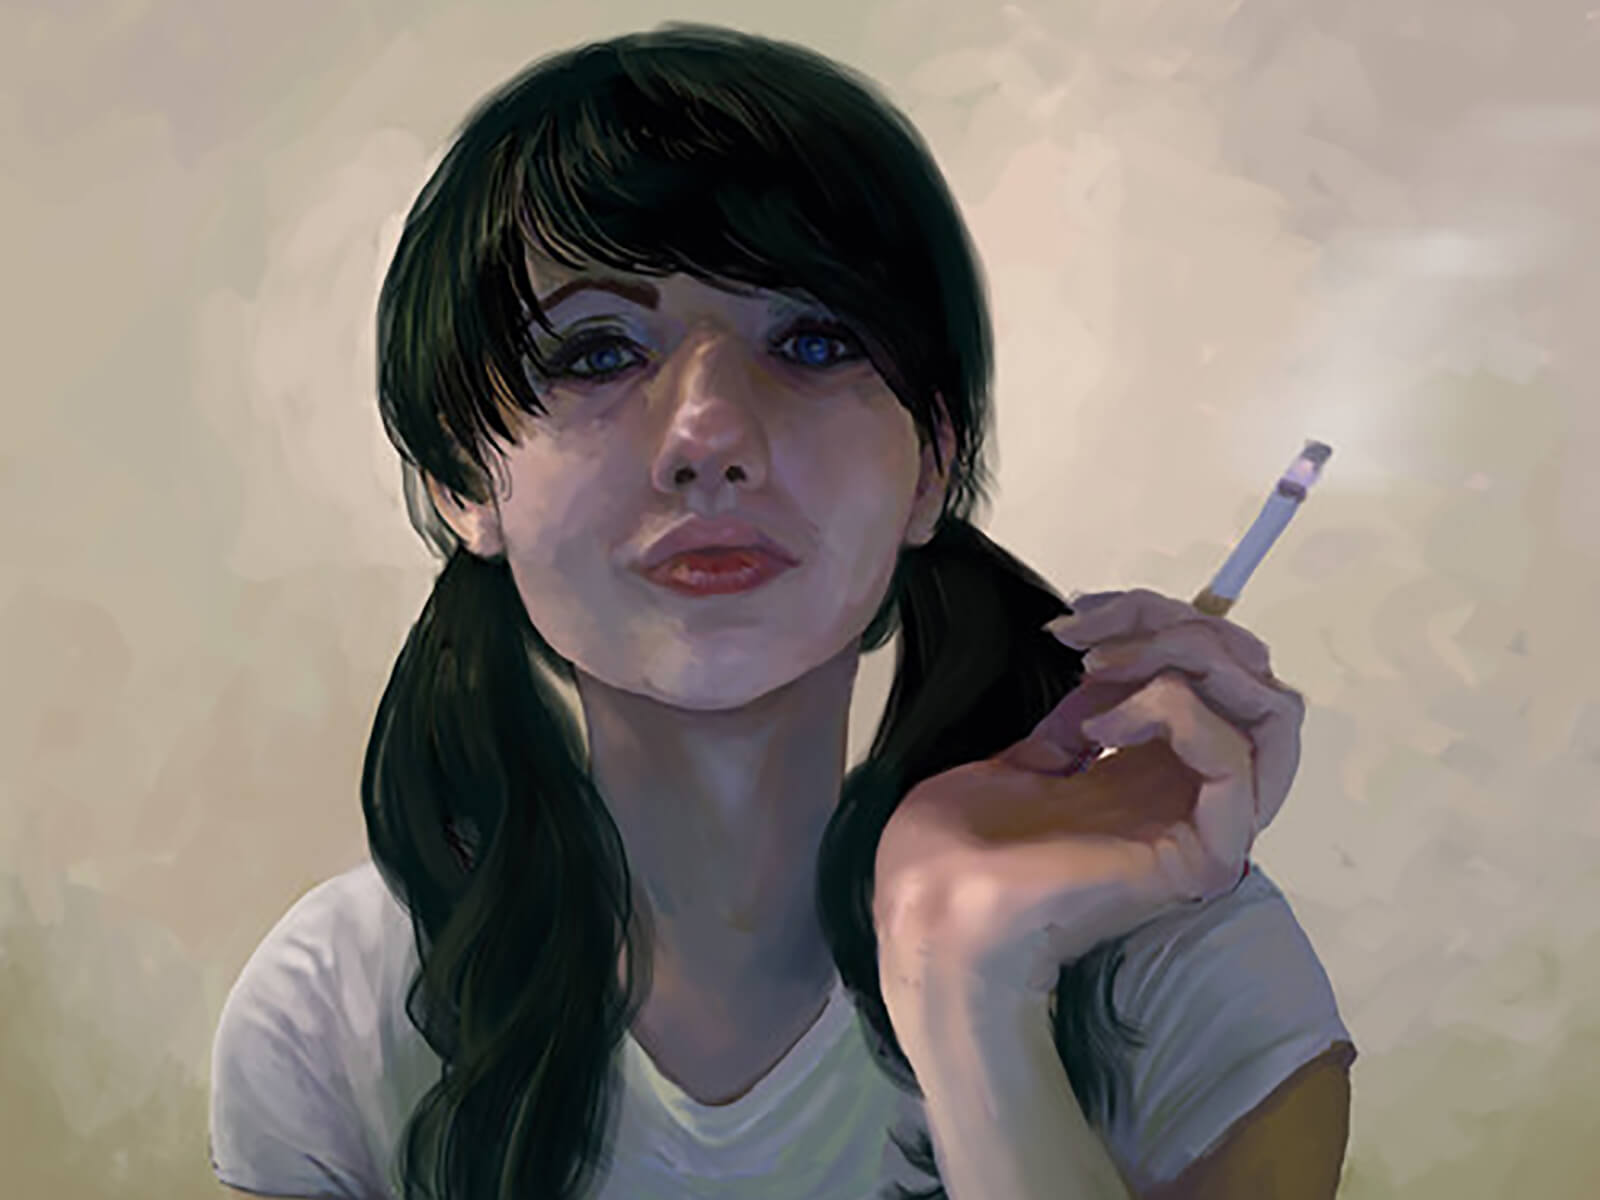 traditional painting portrait of a young woman in pigtails smoking a cigarette